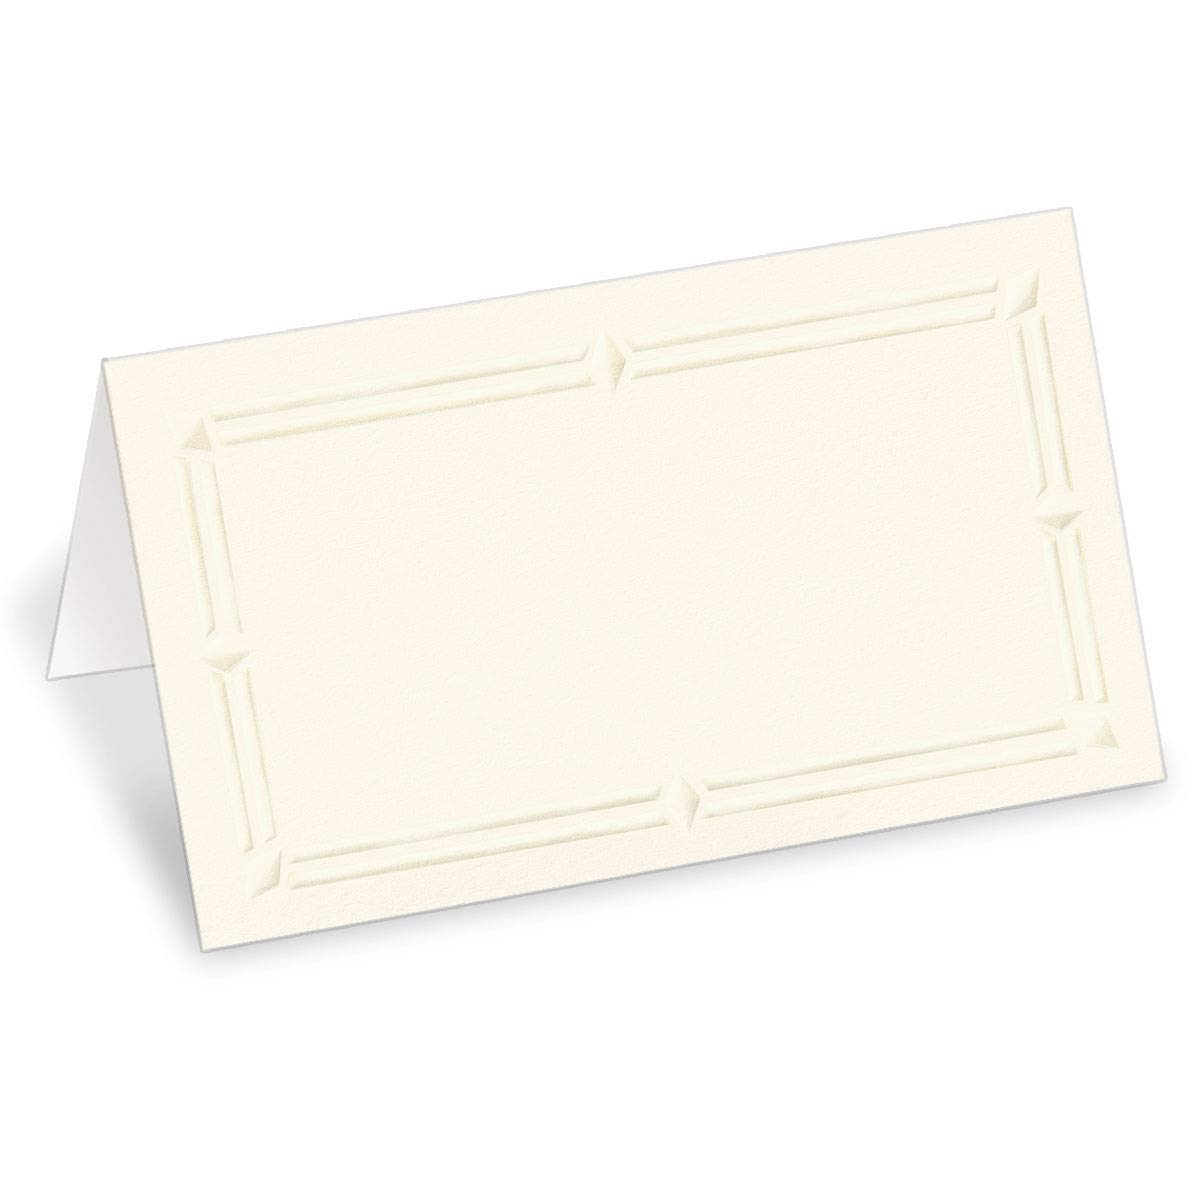 PaperDirect 38lb Cream Cover Stock Folded Place Cards with Cream Foil Border, Micro-Perforated, 2'' x 3 1/2'', 400/pack, Laser and Inkjet Compatible by PaperDirect